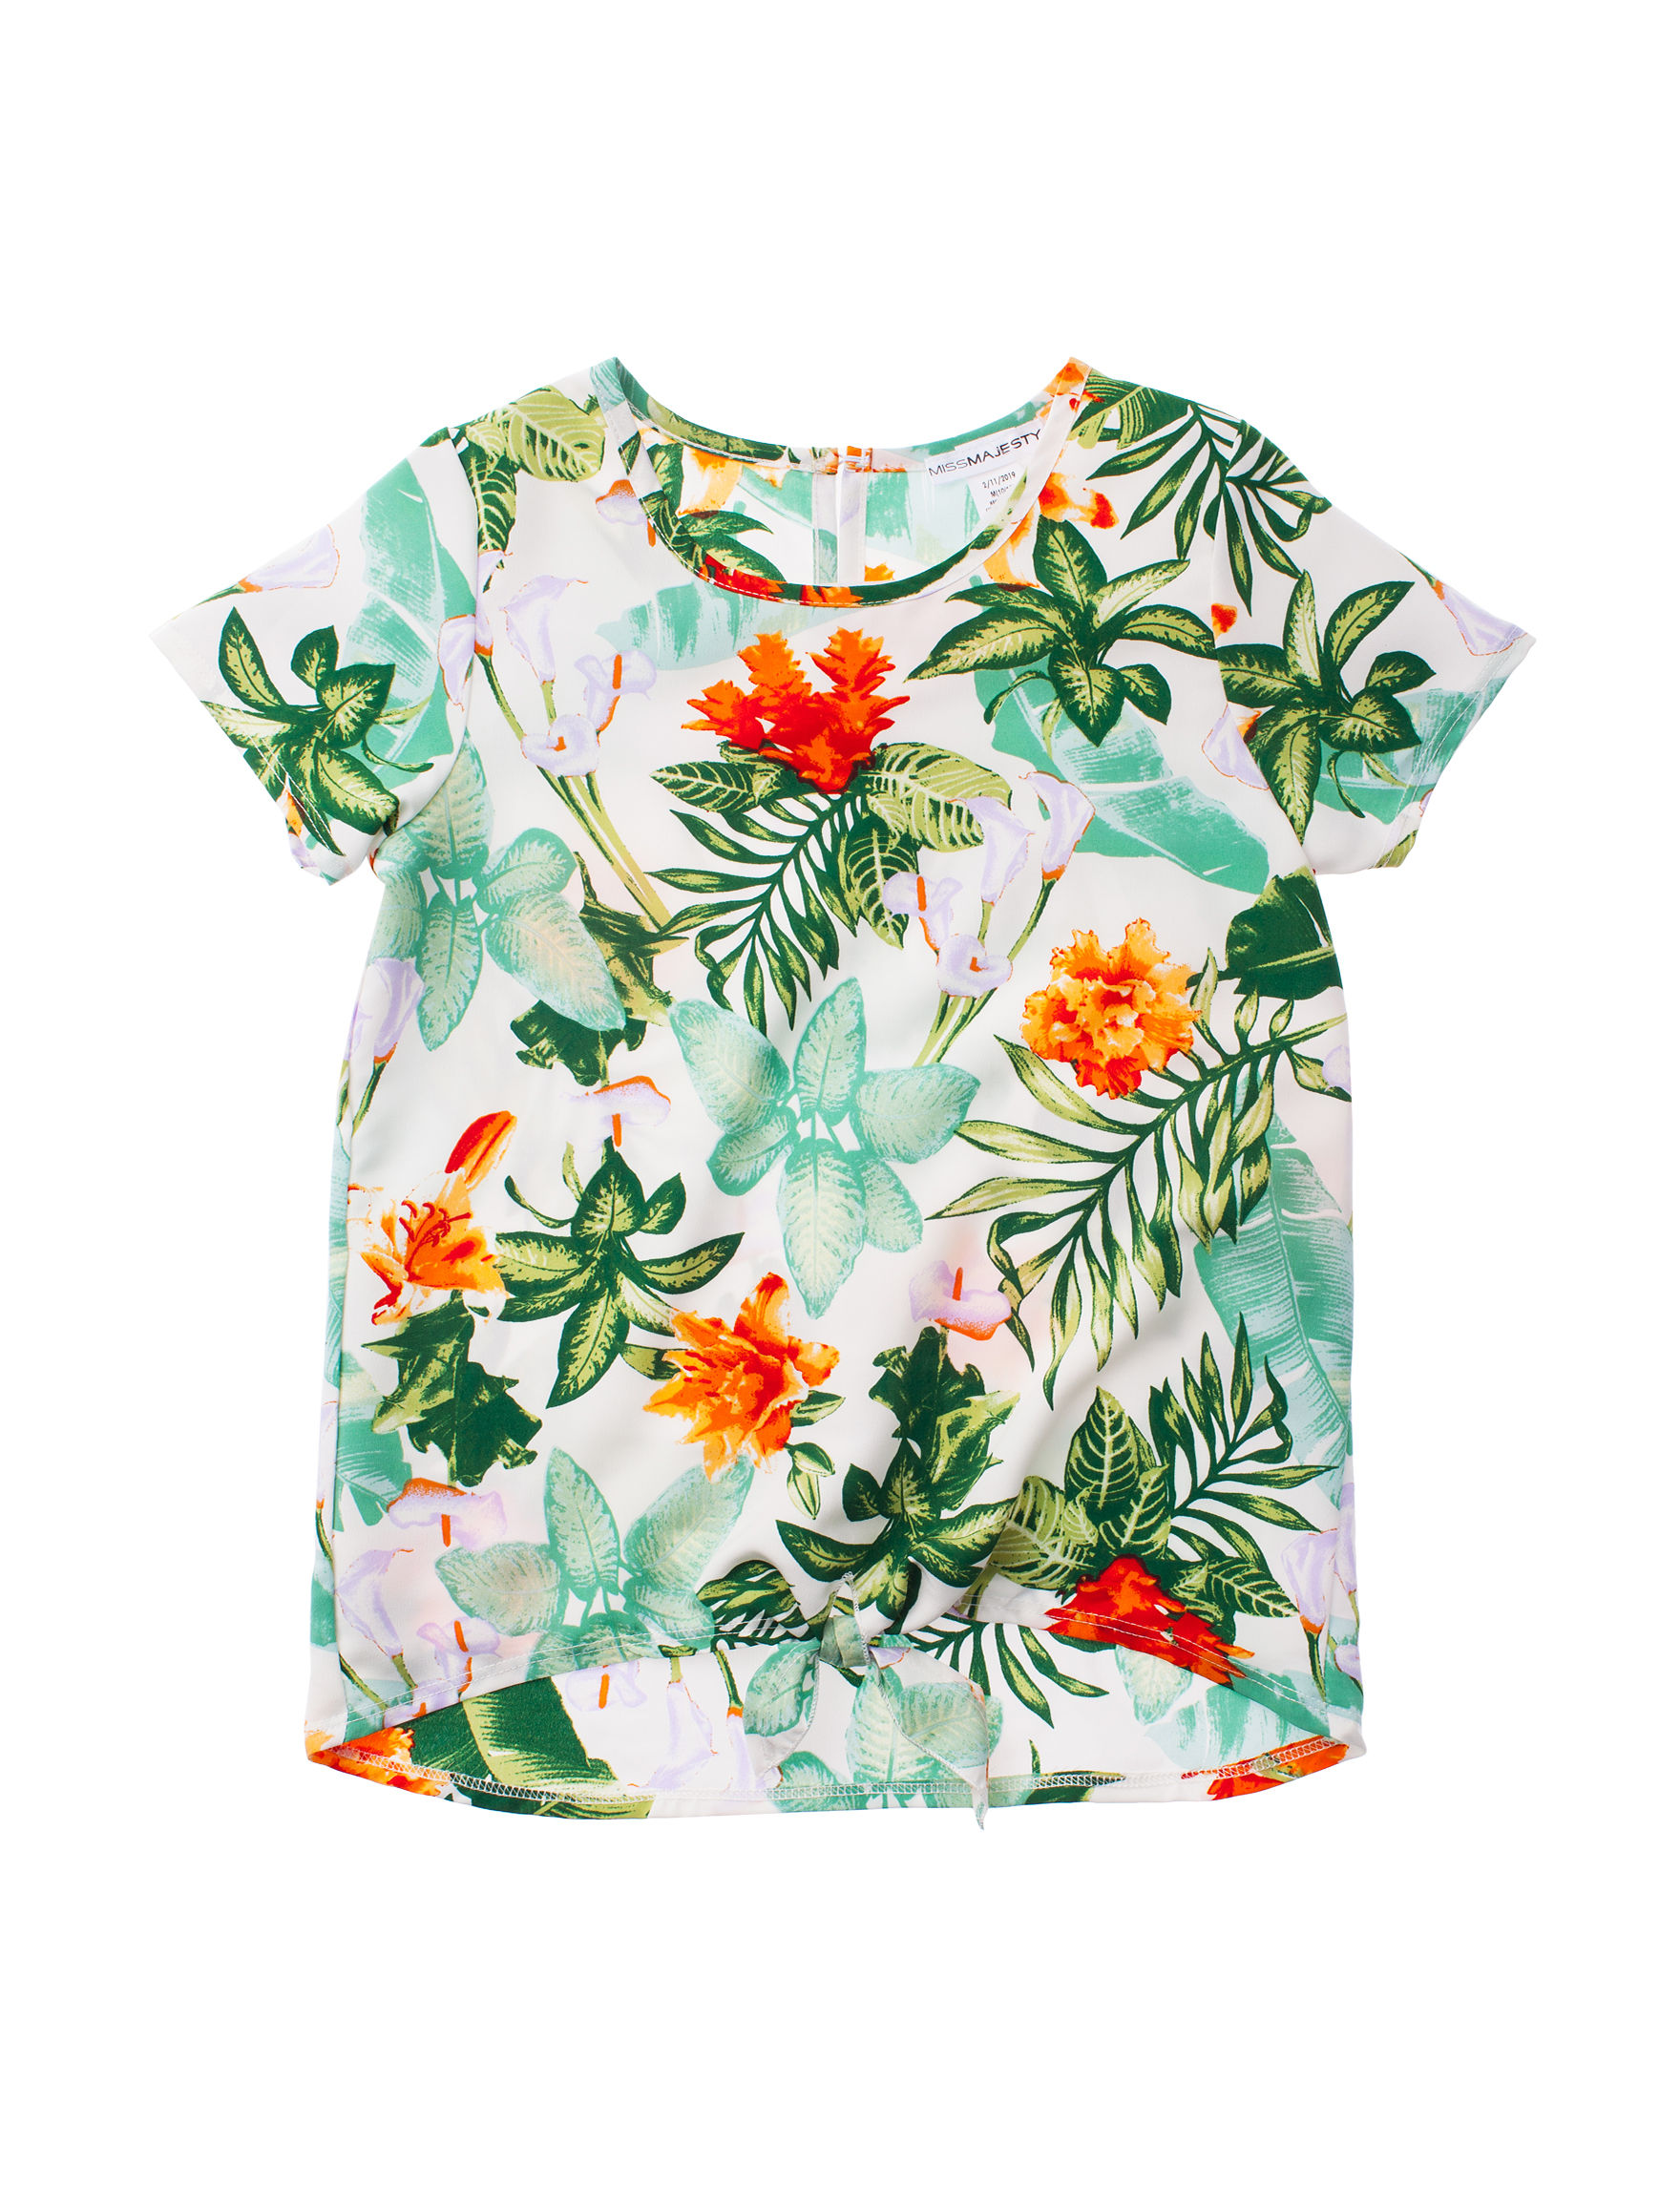 Miss Majesty White Floral Tees & Tanks